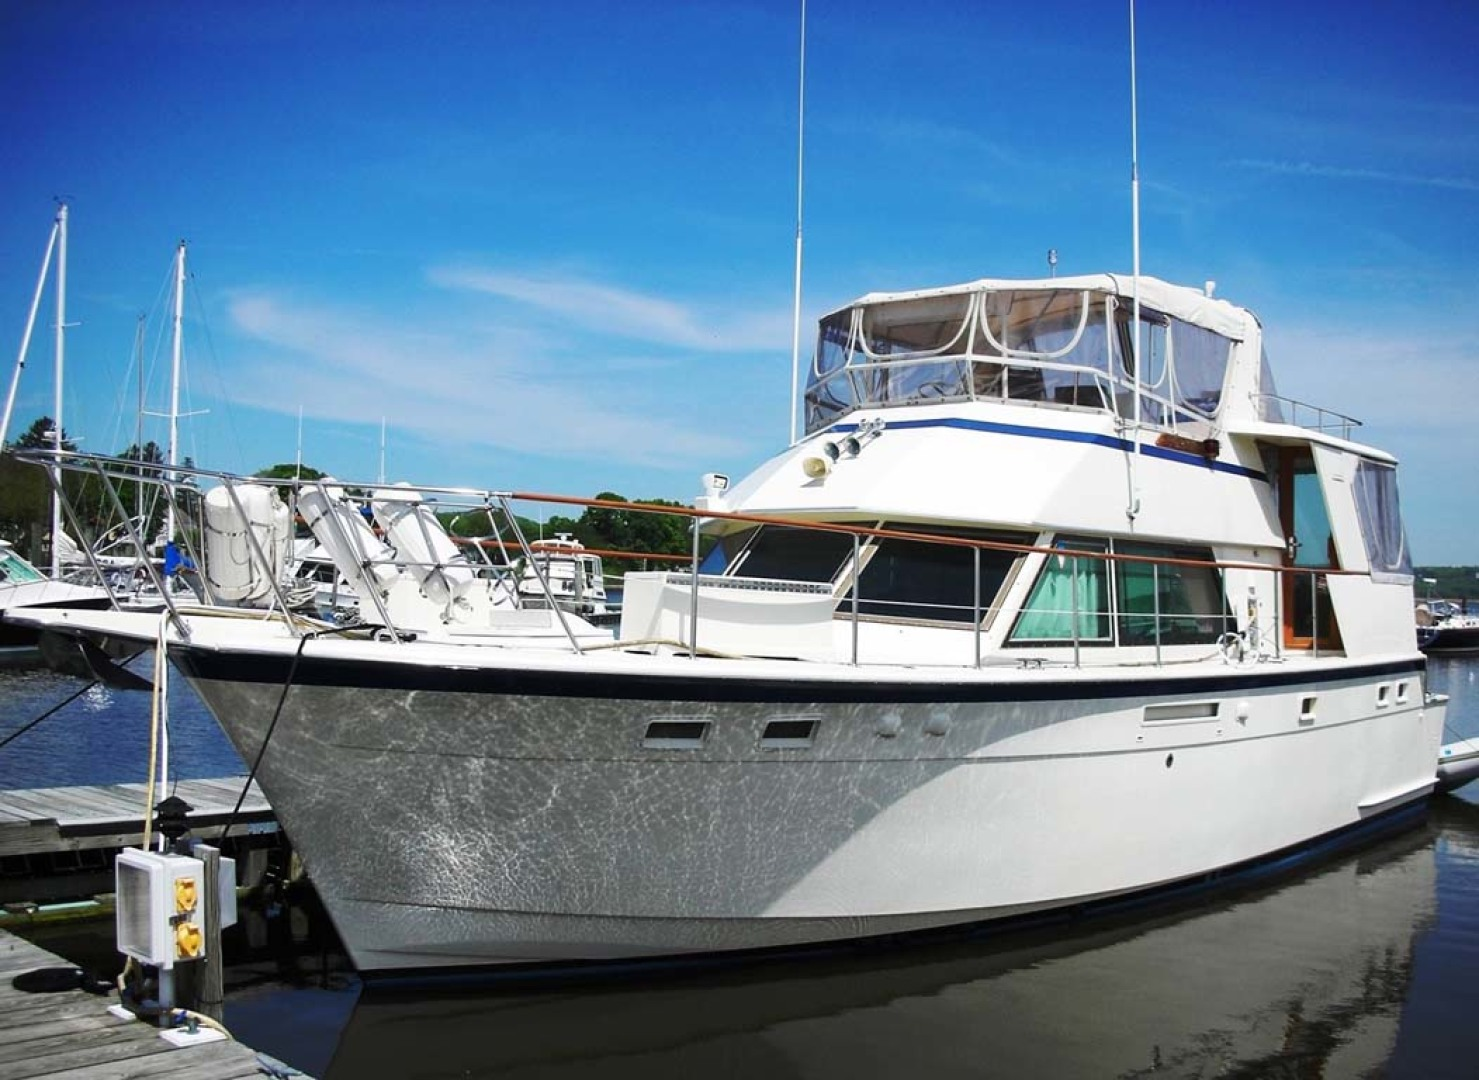 Hatteras-Cockpit Motoryacht 1983-Southern Cross Essex-Connecticut-United States-Main Profile-1155687 | Thumbnail